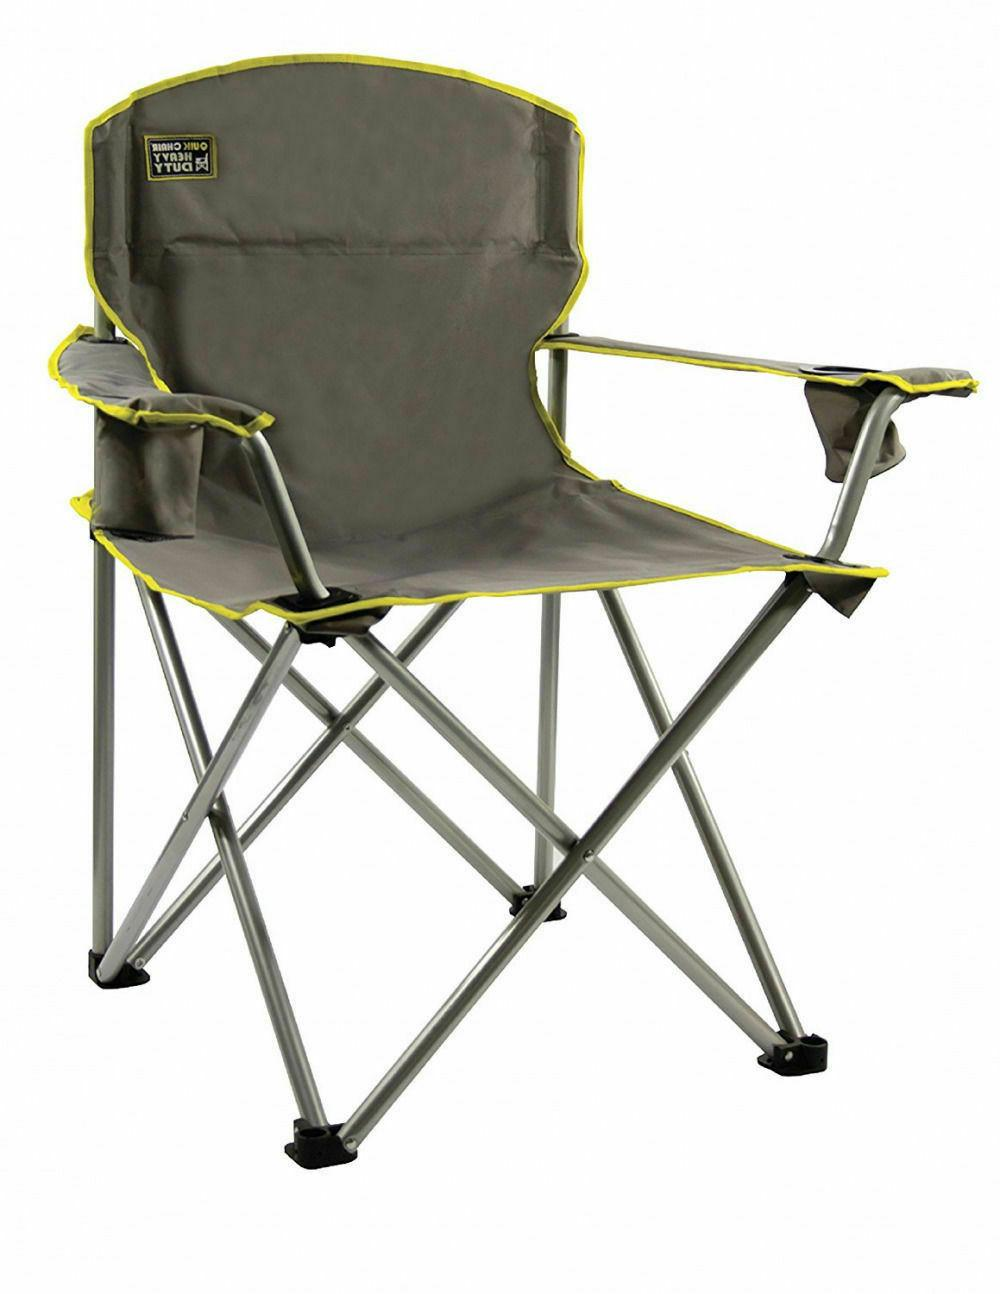 Heavy Camp Chair Outdoor Portable 500LBS Oversized